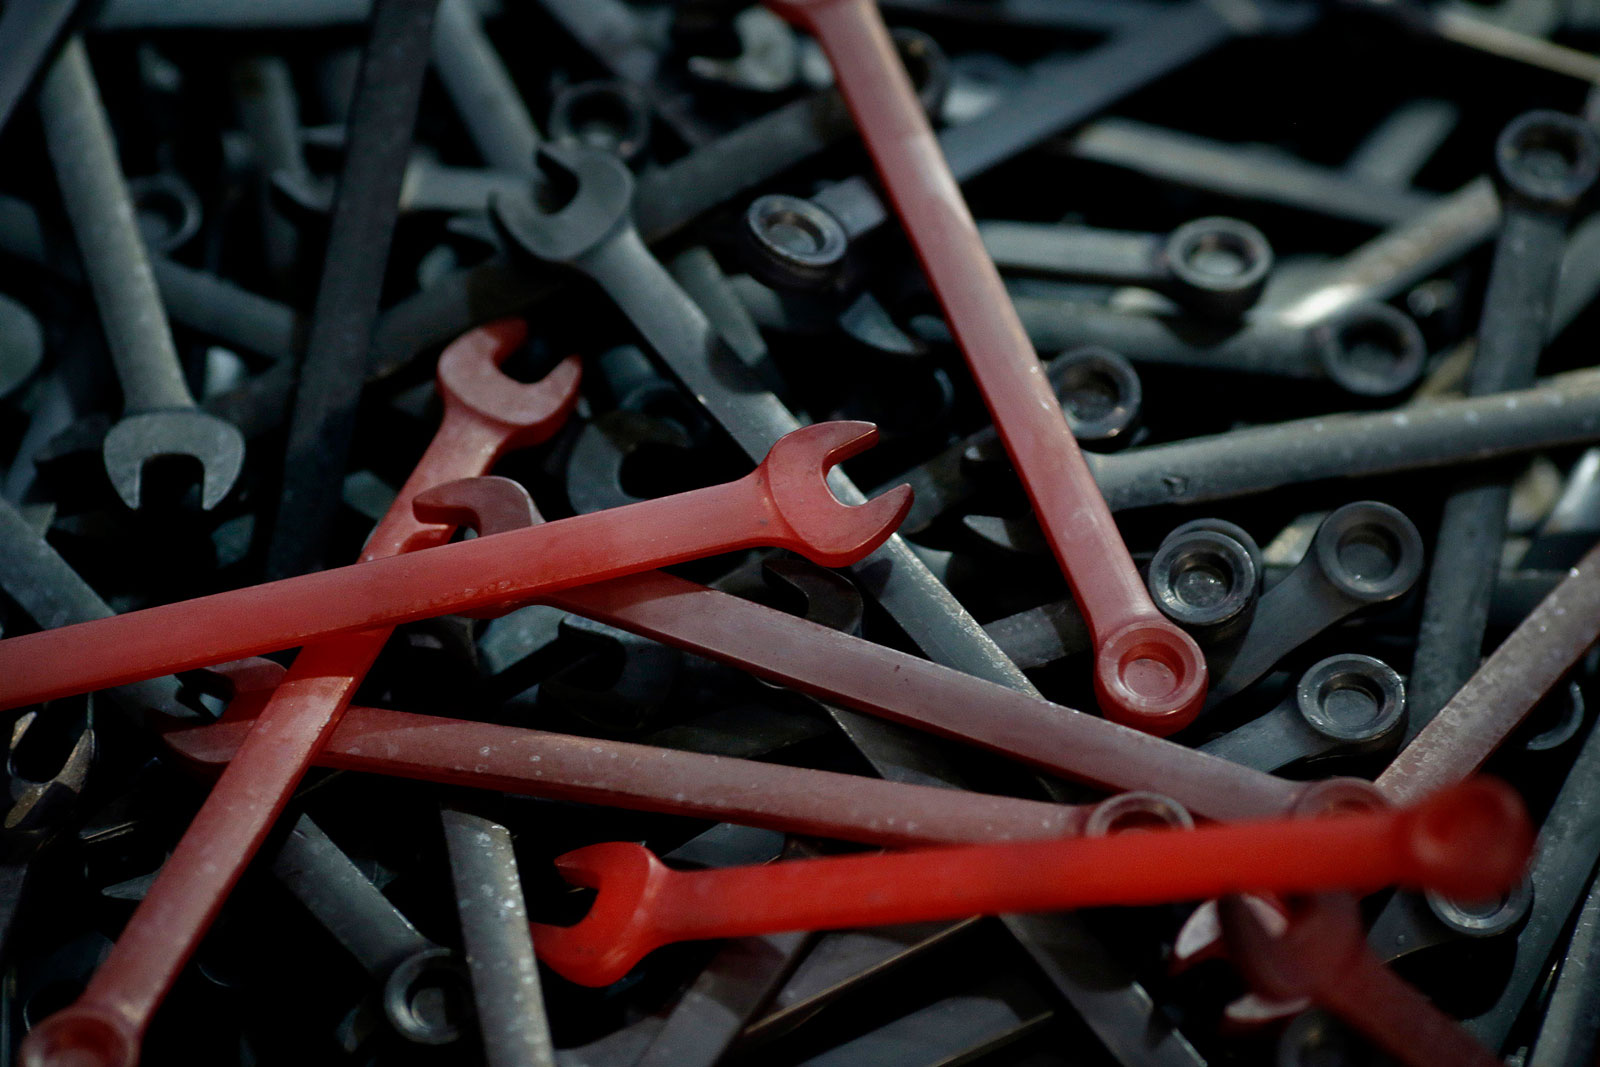 Red-hot wrenches after being forged on the production line at the Snap-on manufacturing facility in Elizabethton, Tenn.